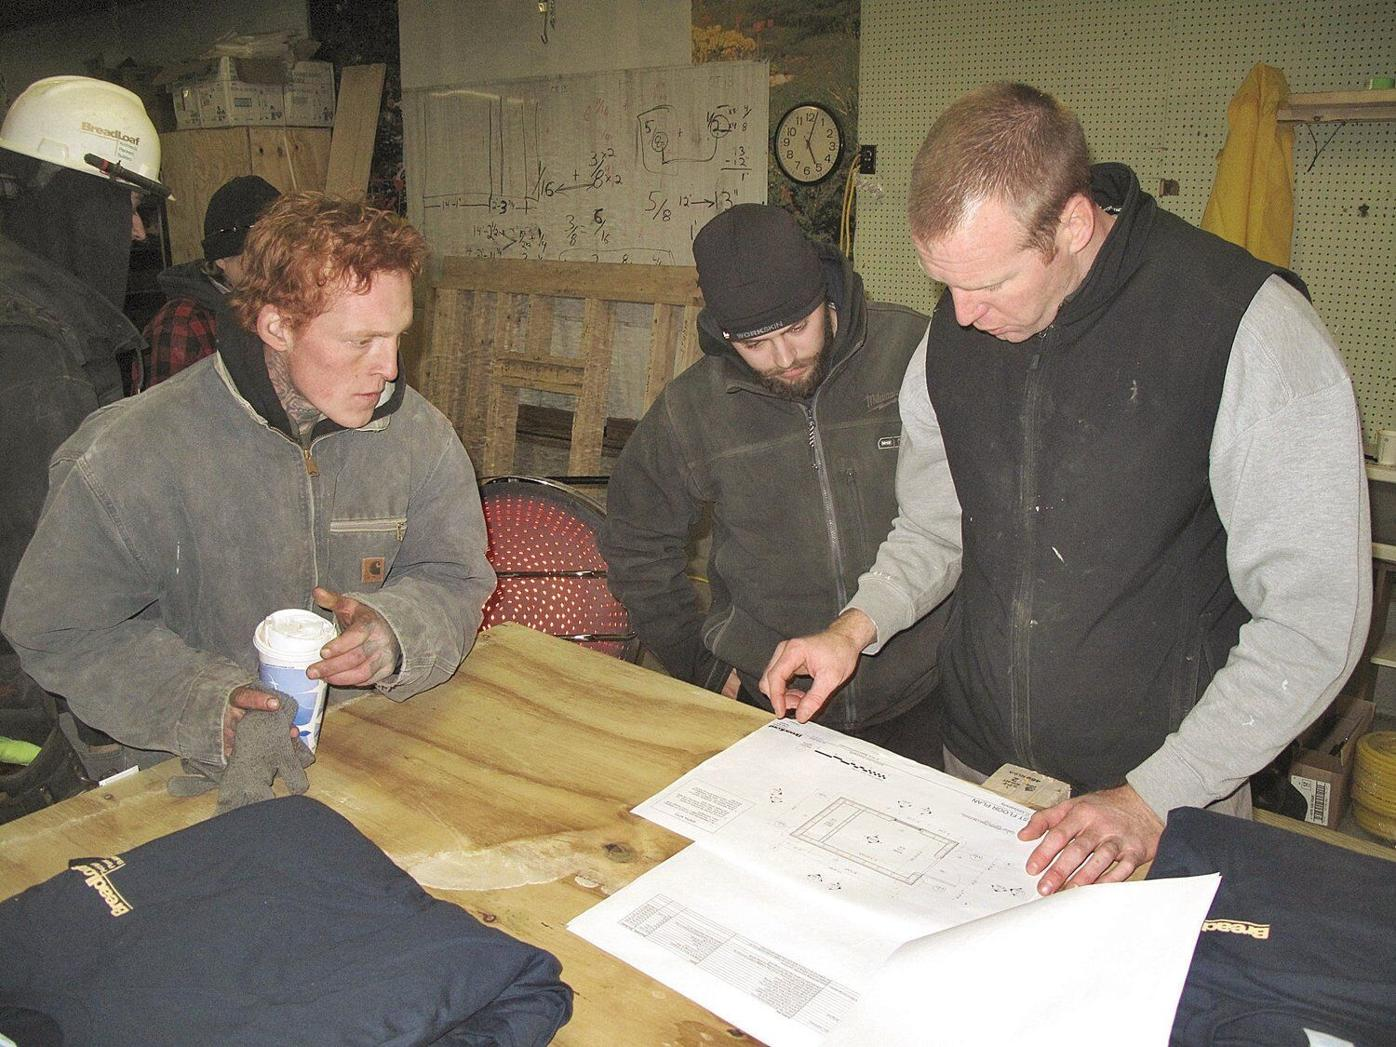 Bread Loaf workers build skills by constructing a shed at the Putnam Block